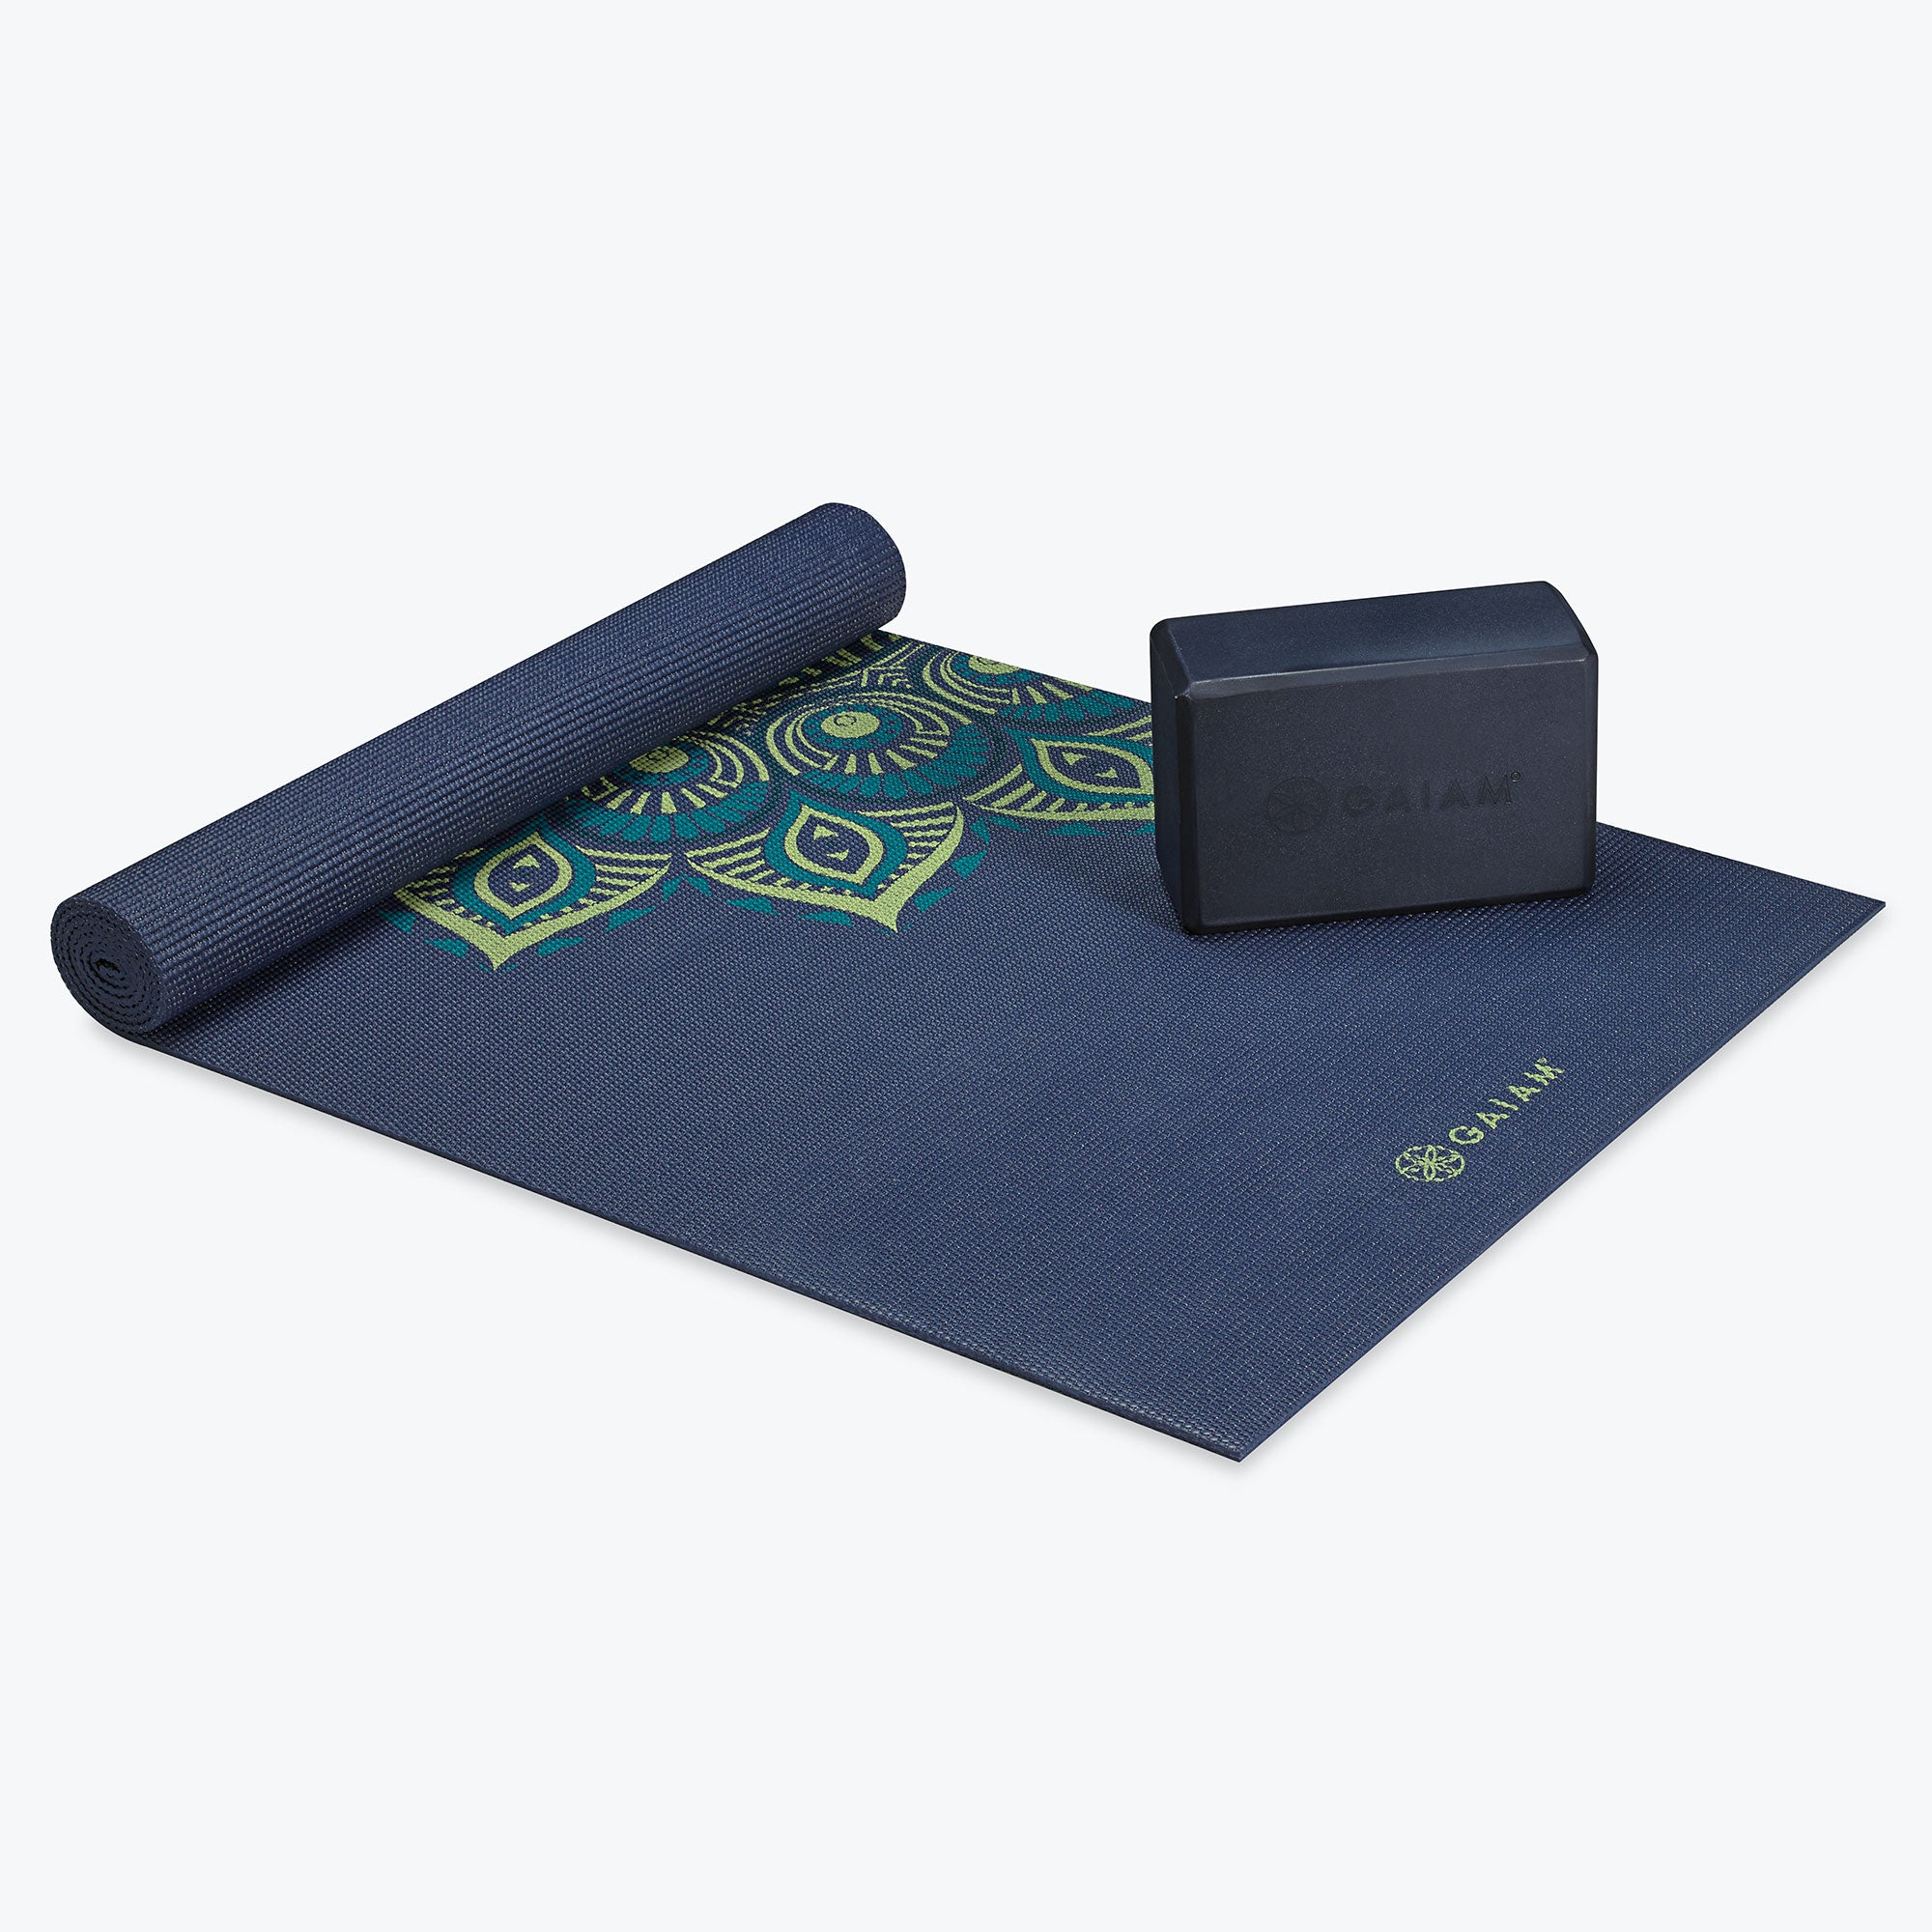 Image of Cushion & Support Yoga Kit